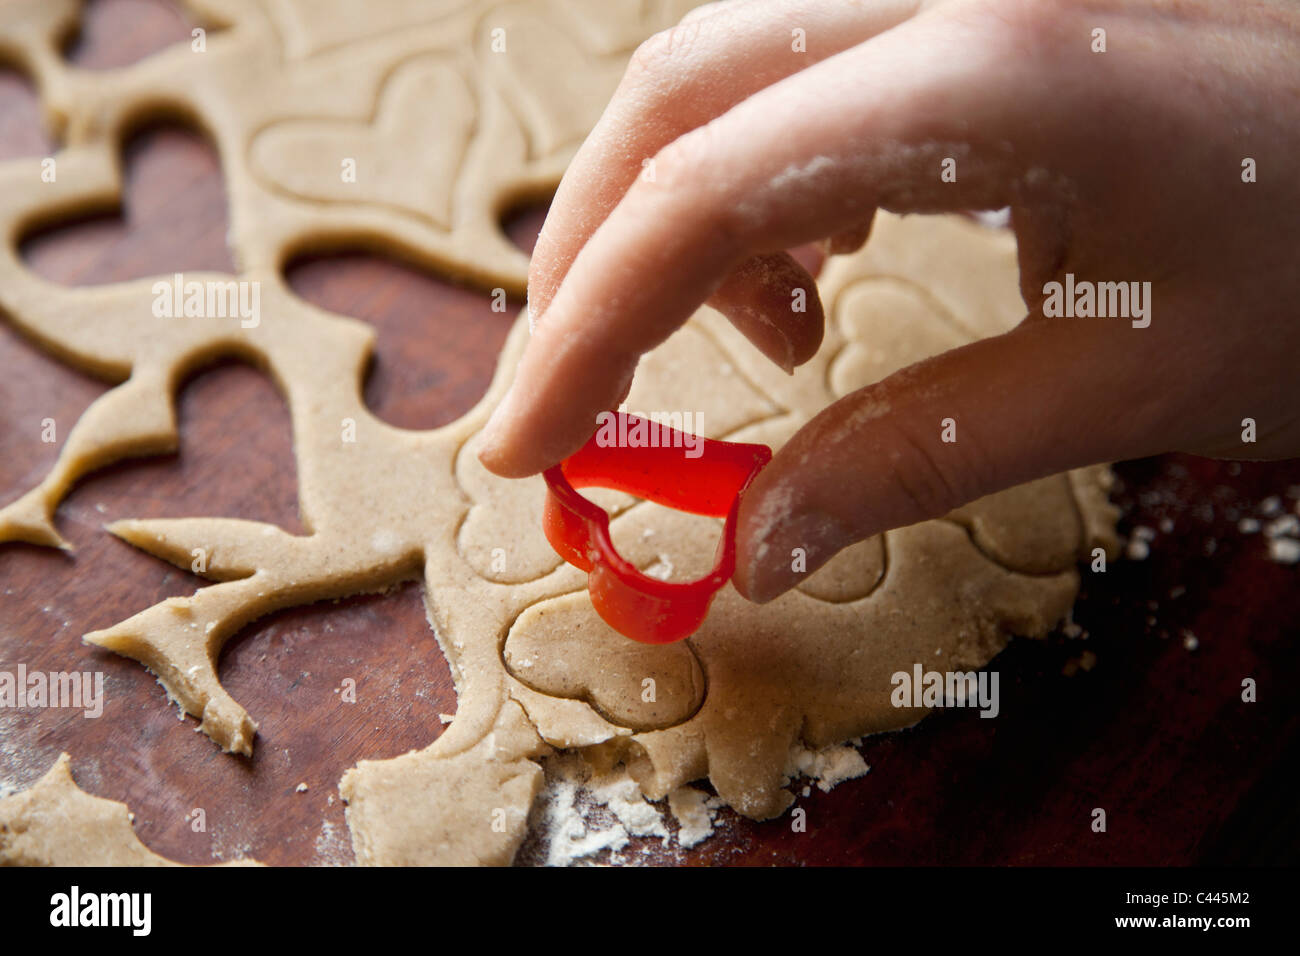 Detail of a hand using a heart shape cookie cutter Stock Photo